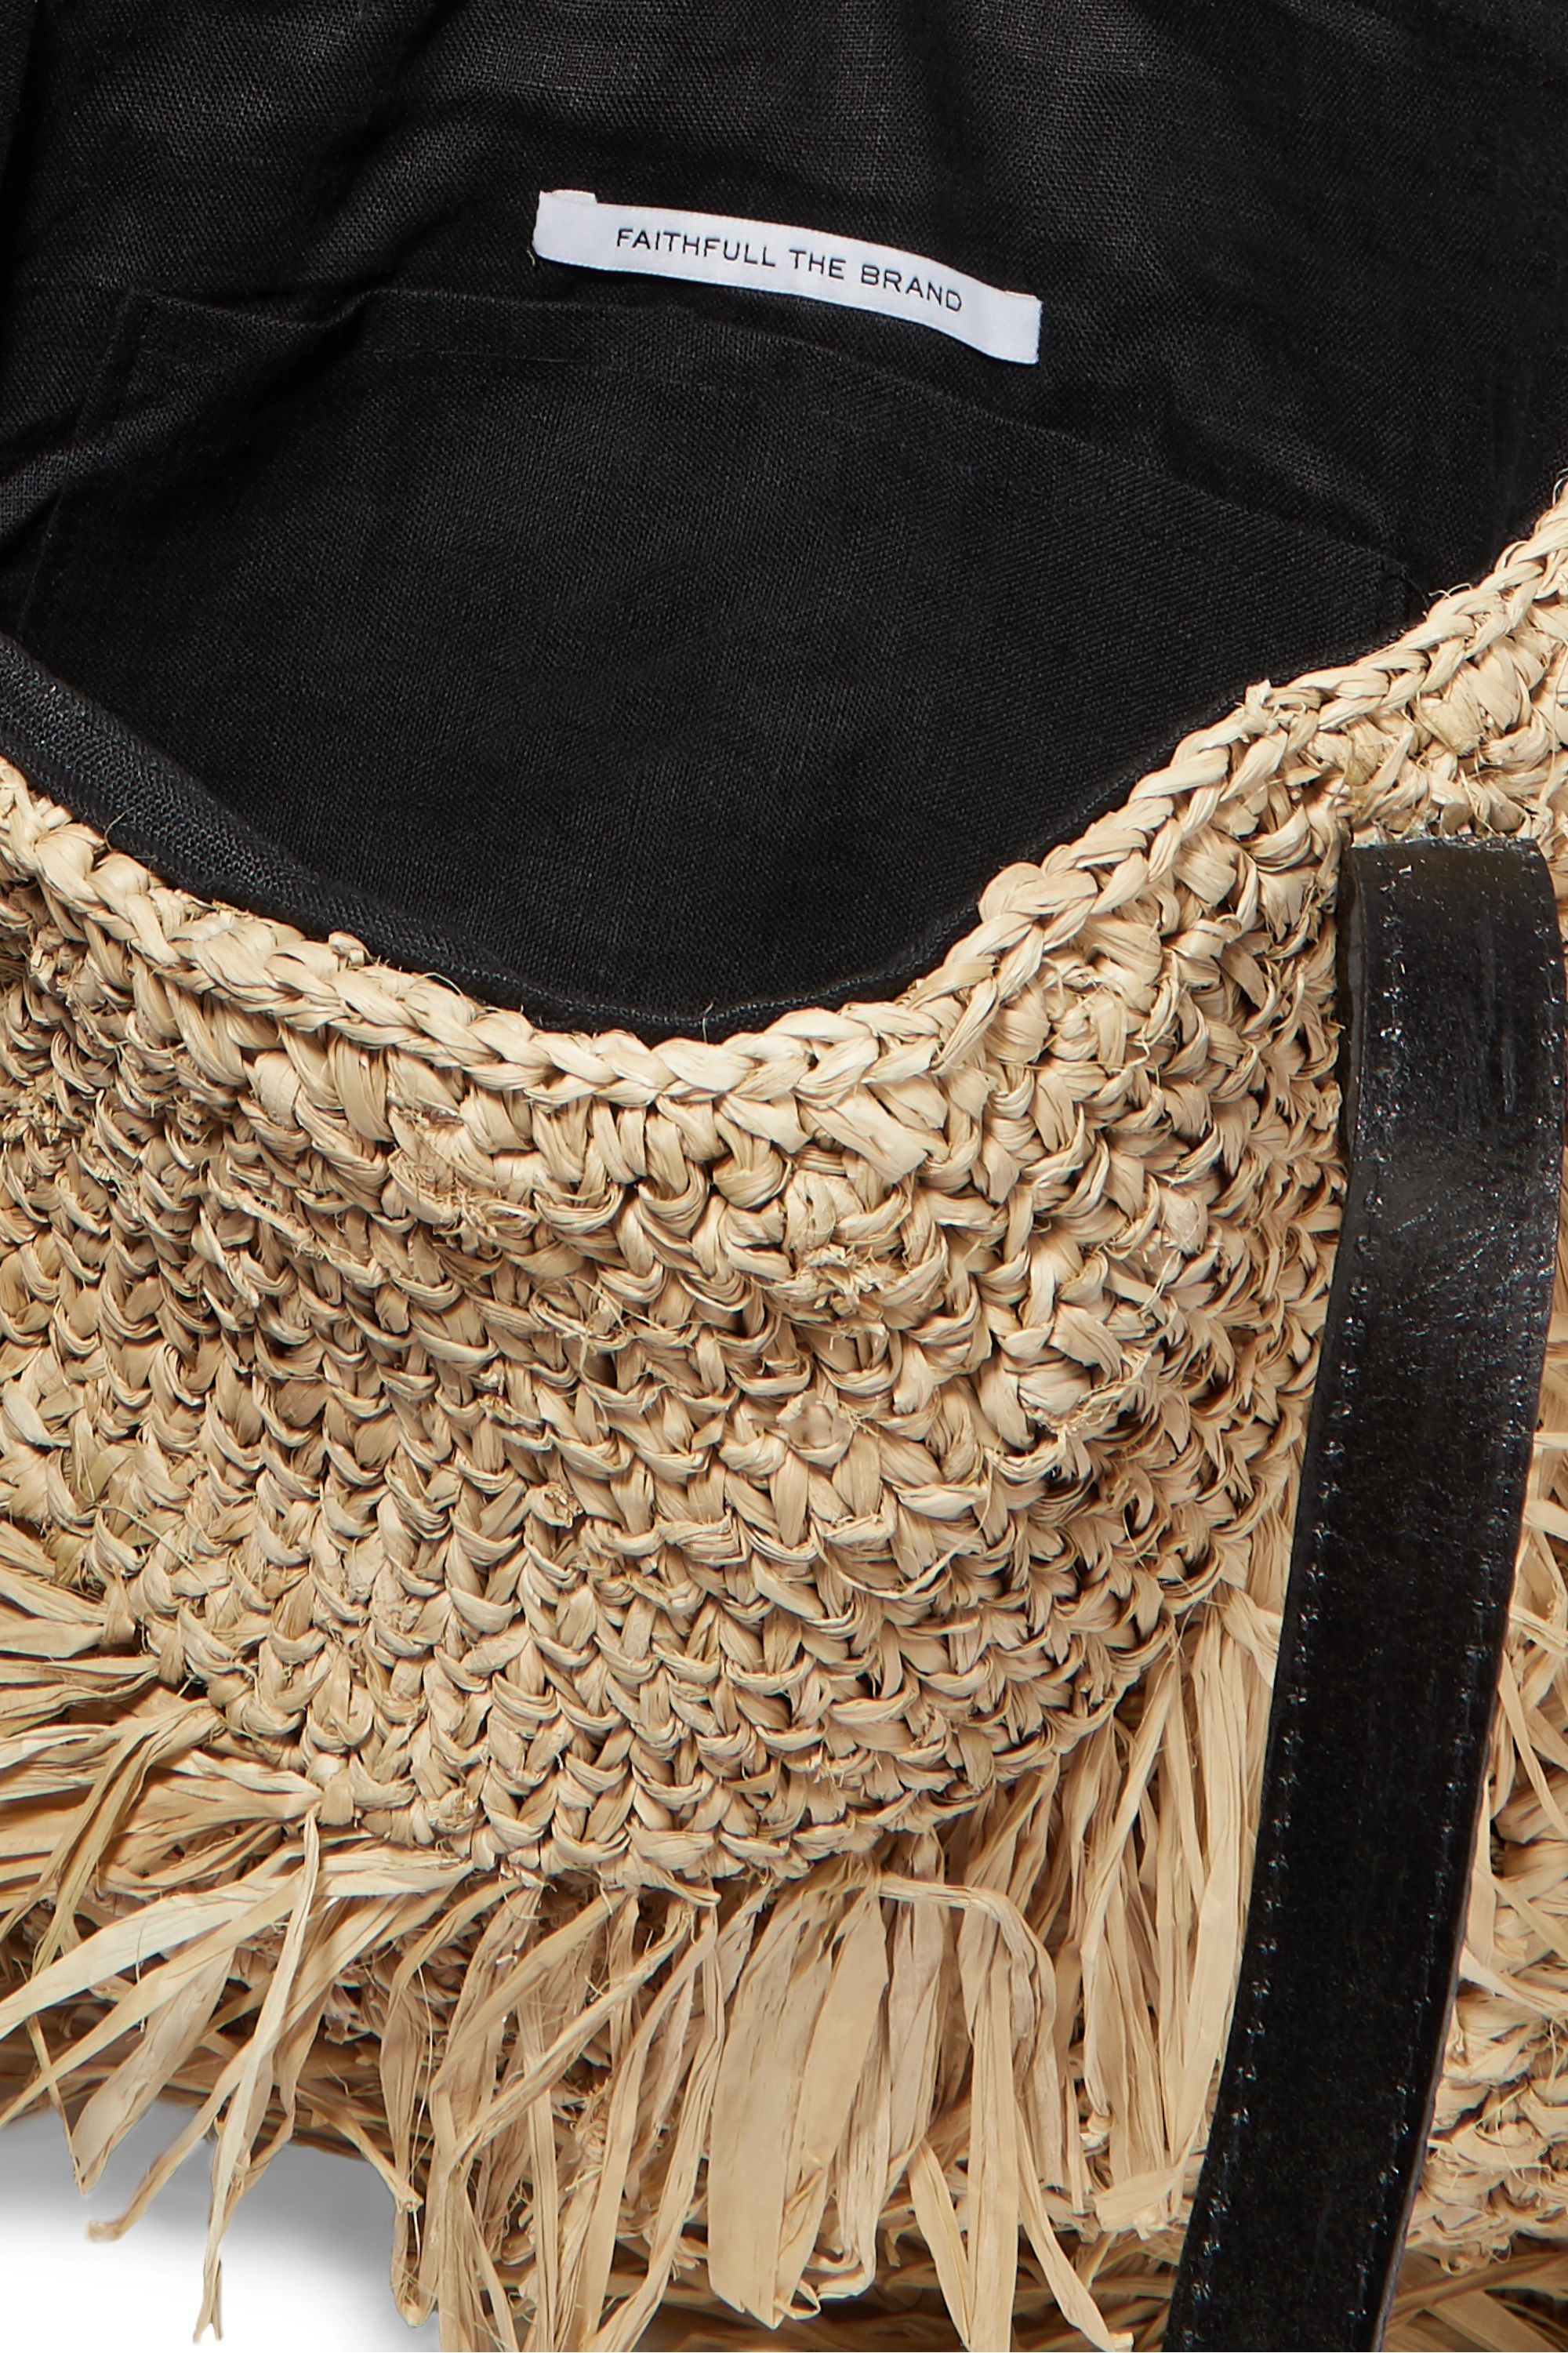 Faithfull The Brand Monikha leather-trimmed fringed raffia tote